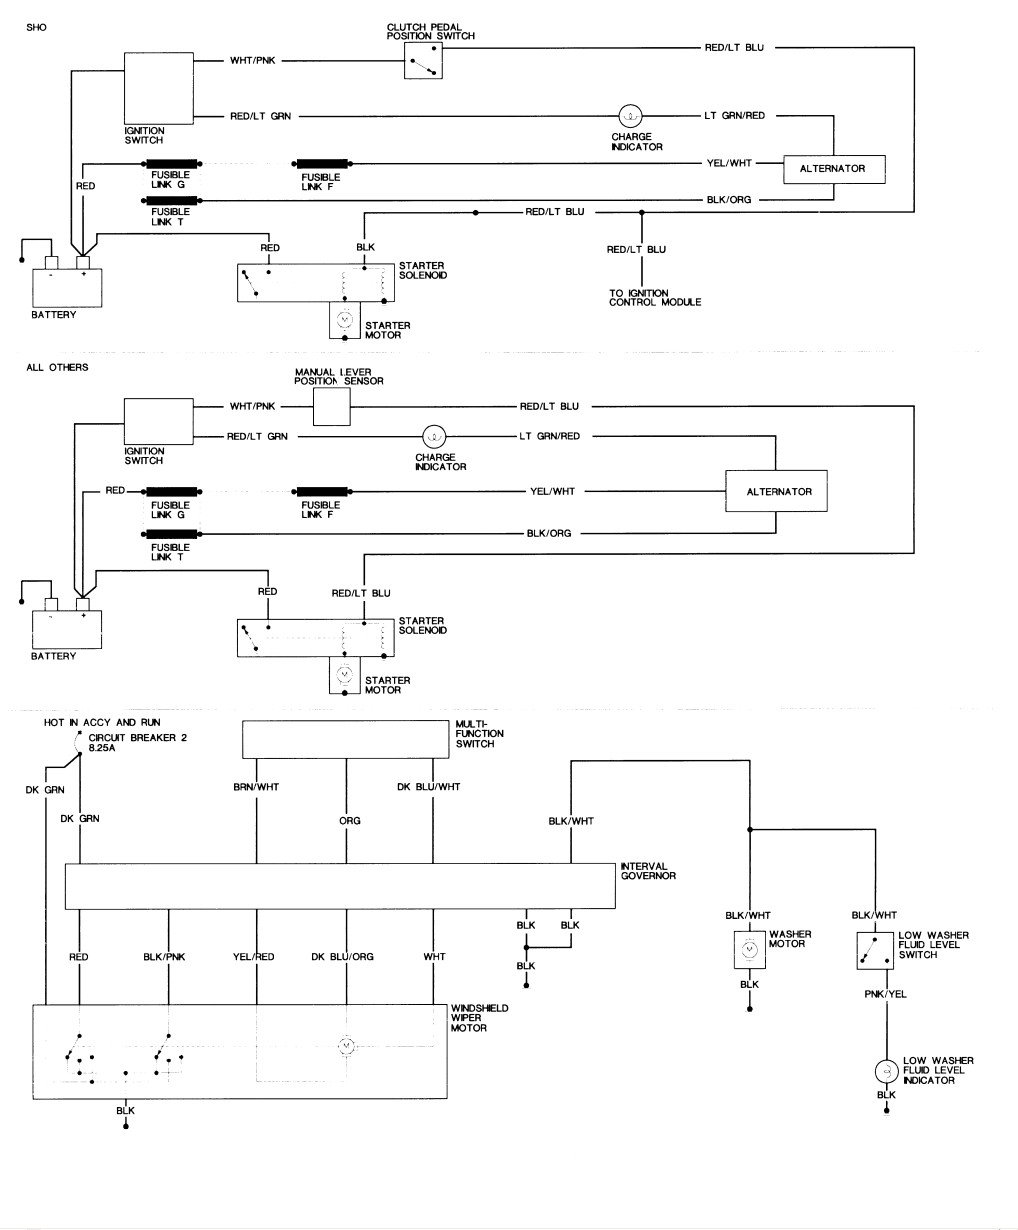 Wiring Diagram For 1992 Ford Taurus Books Of 01 Ses Need To Find The On A